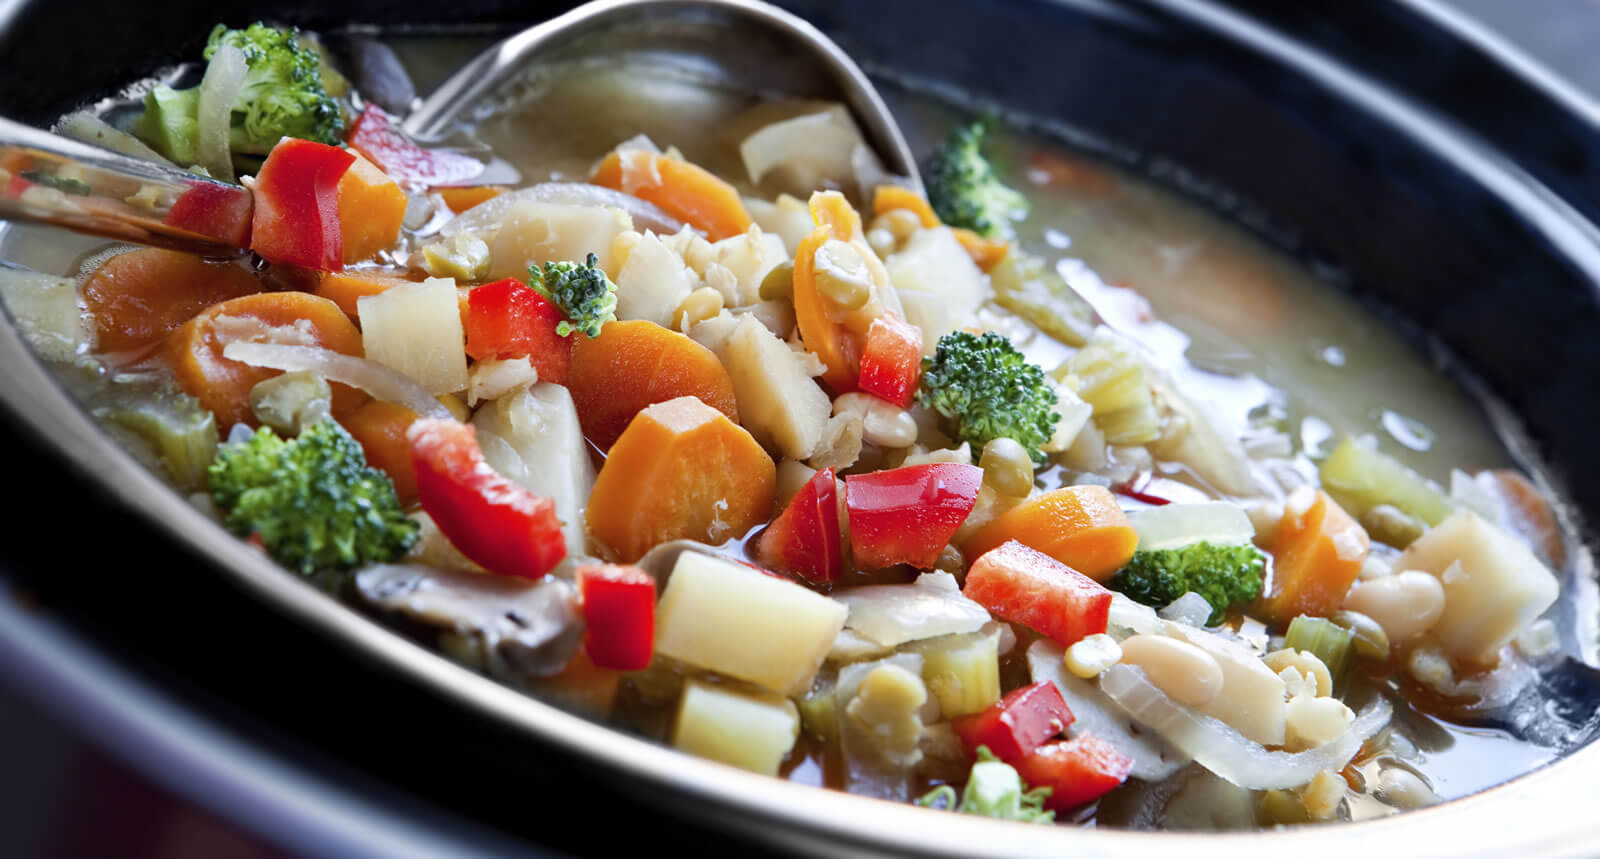 Even healthy things can emerge from slow cooking